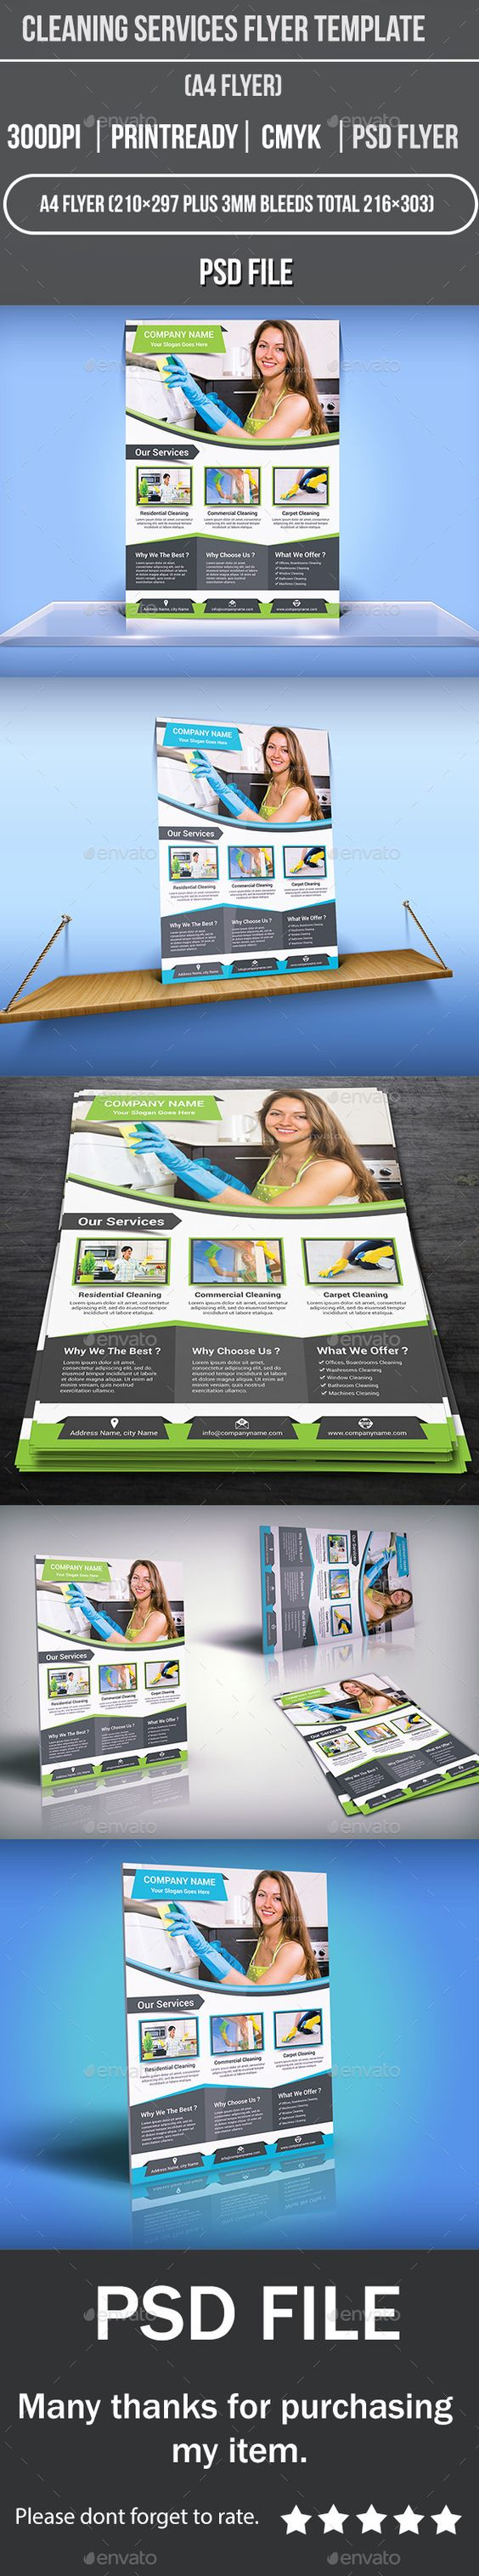 cleaning services flyer template green photoshop and flyer template cleaning services flyer template corporate flyers